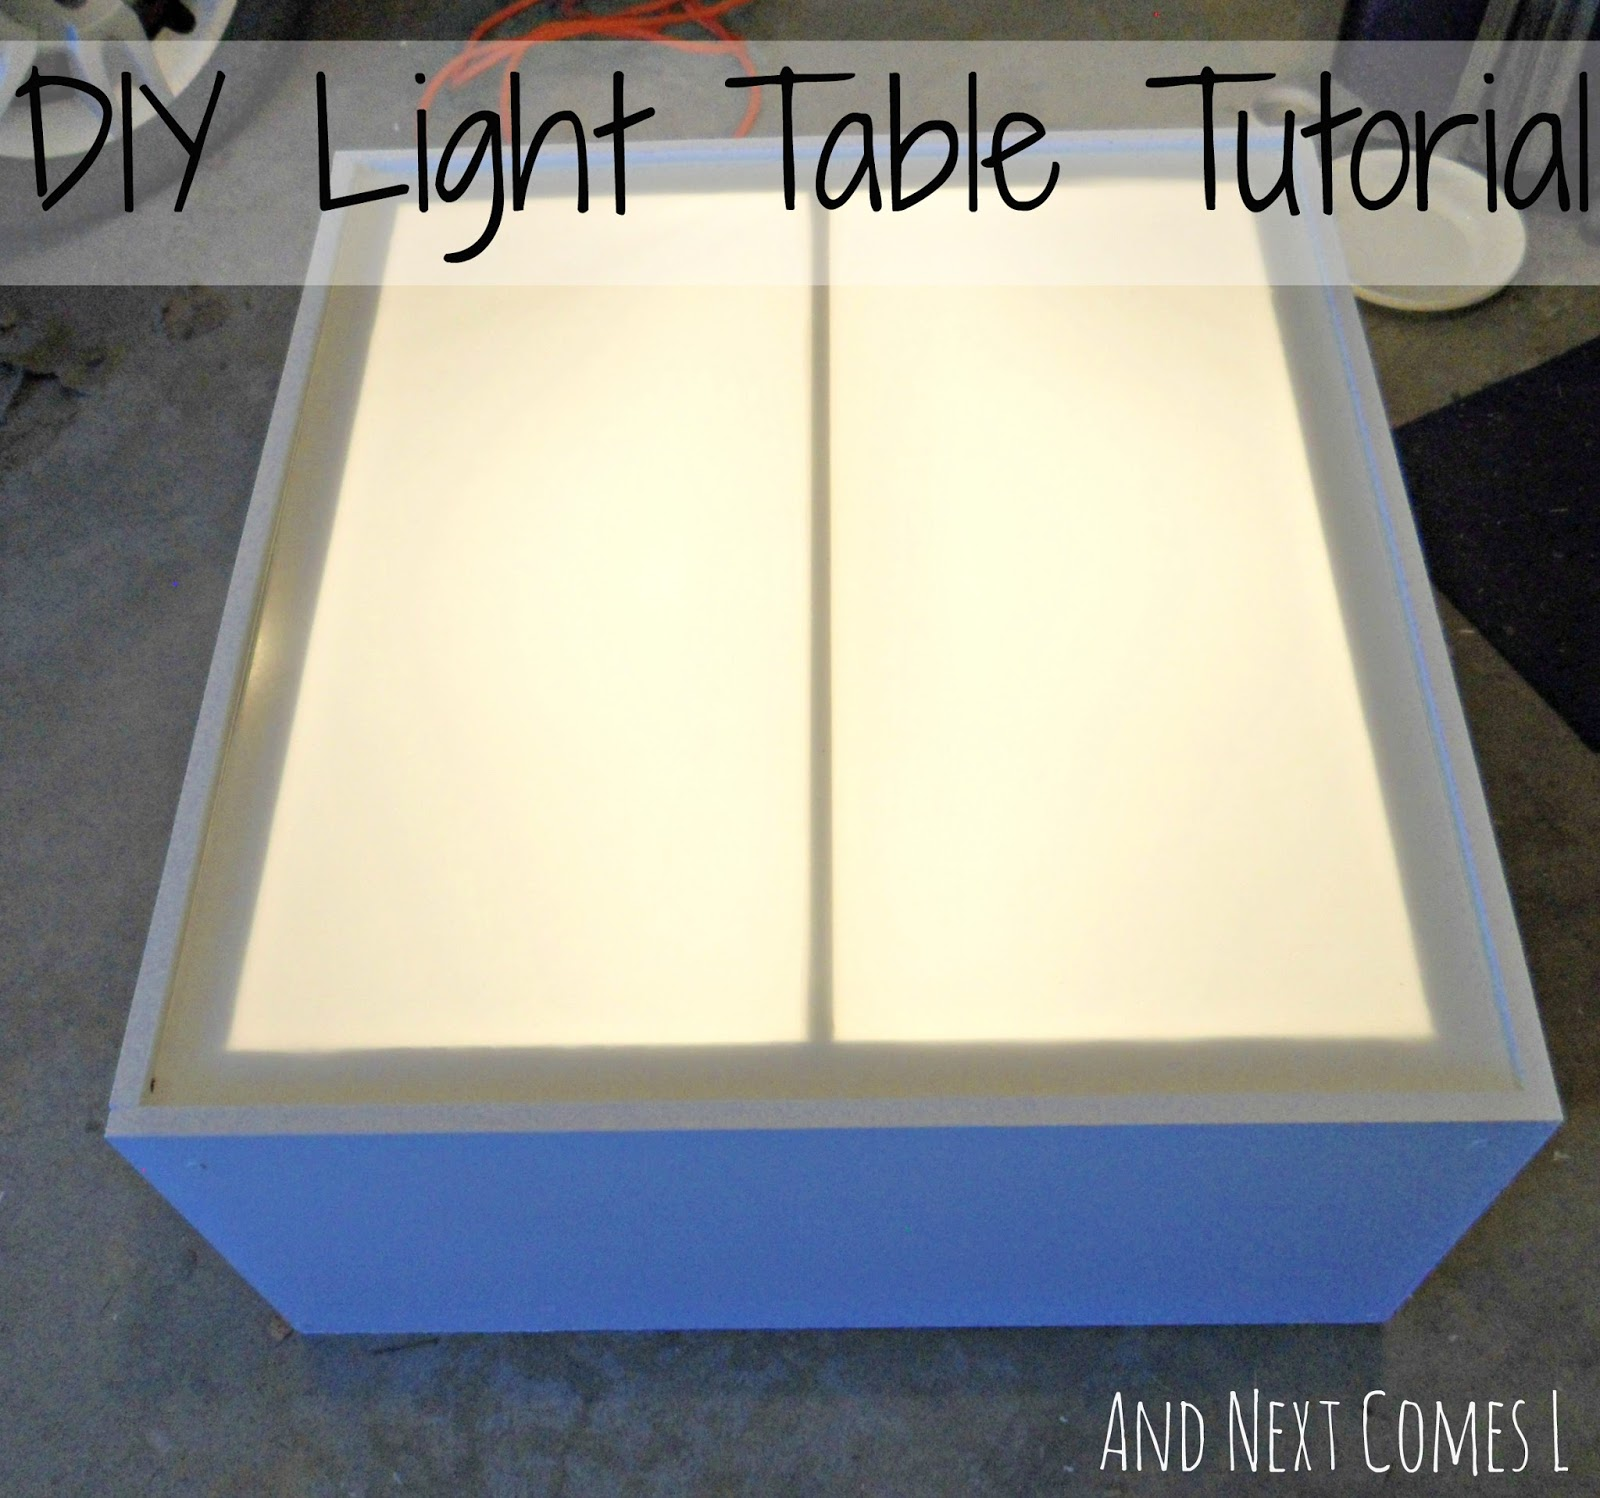 Diy Light Table Tutorial And Next Comes L